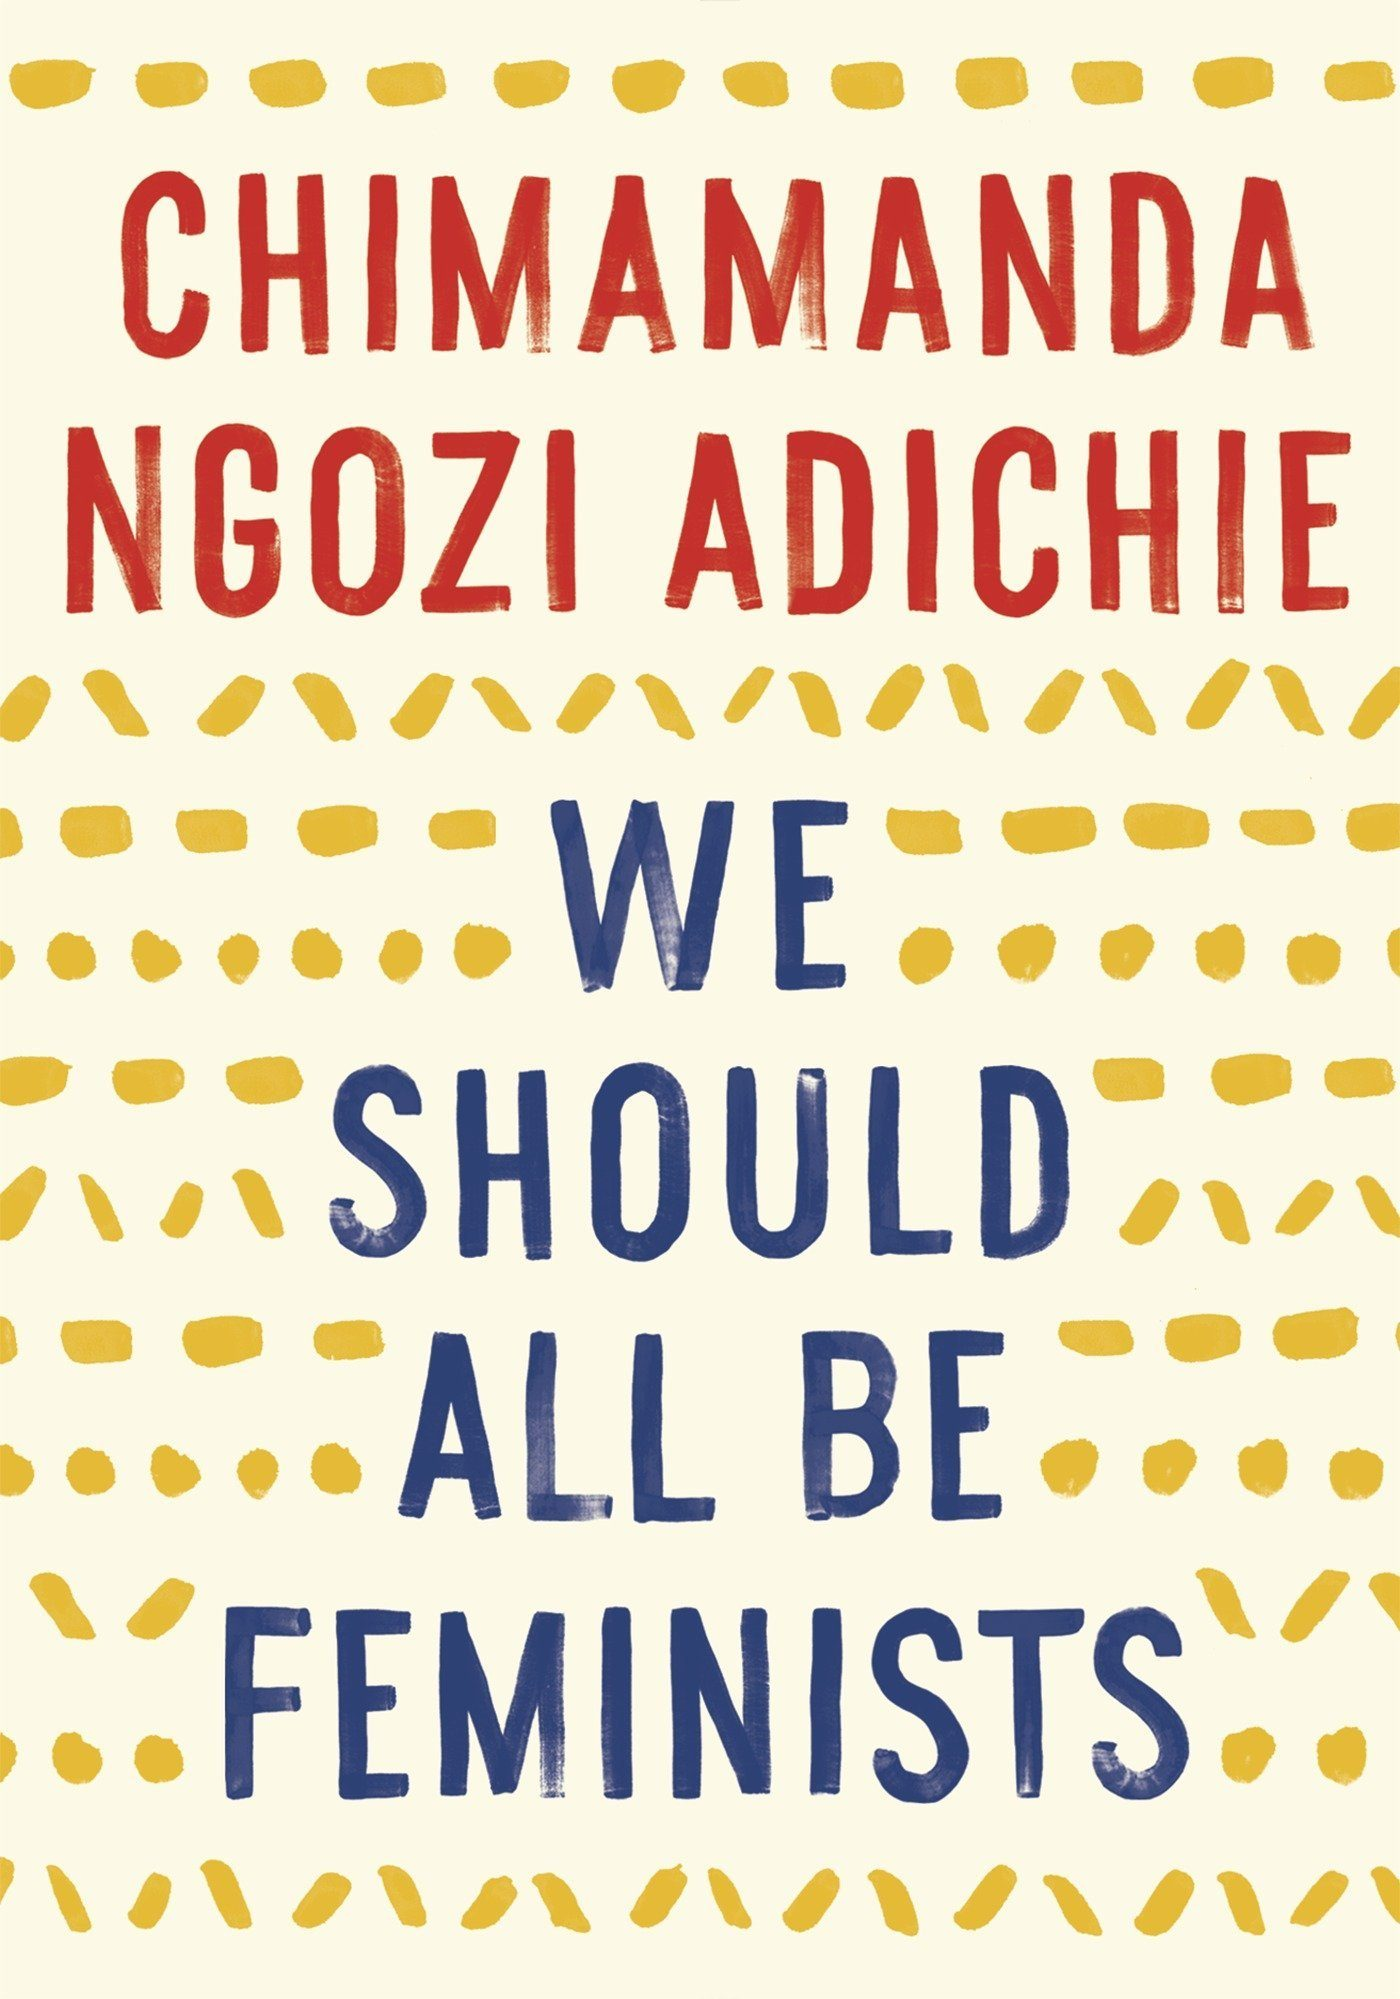 Book cover of Chimamanda Ngozi Adiche's book We should all be feminists, summer reading list, inspiration, diversity